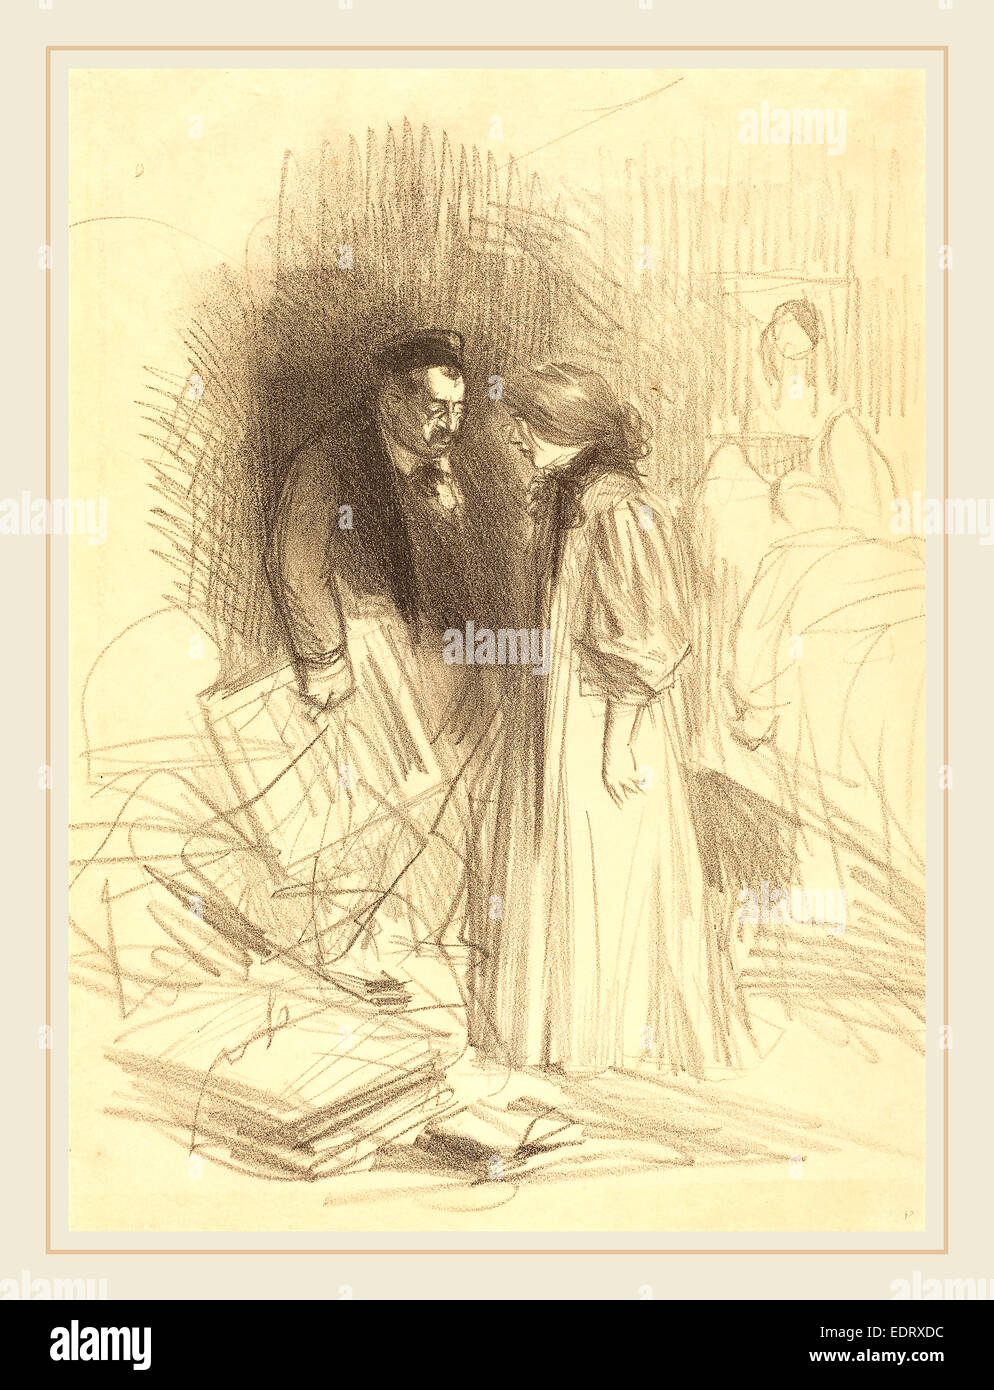 Jean-Louis Forain (French, 1852-1931), 'I don't dare take them down it would hurt him too much.', c. - Stock Image